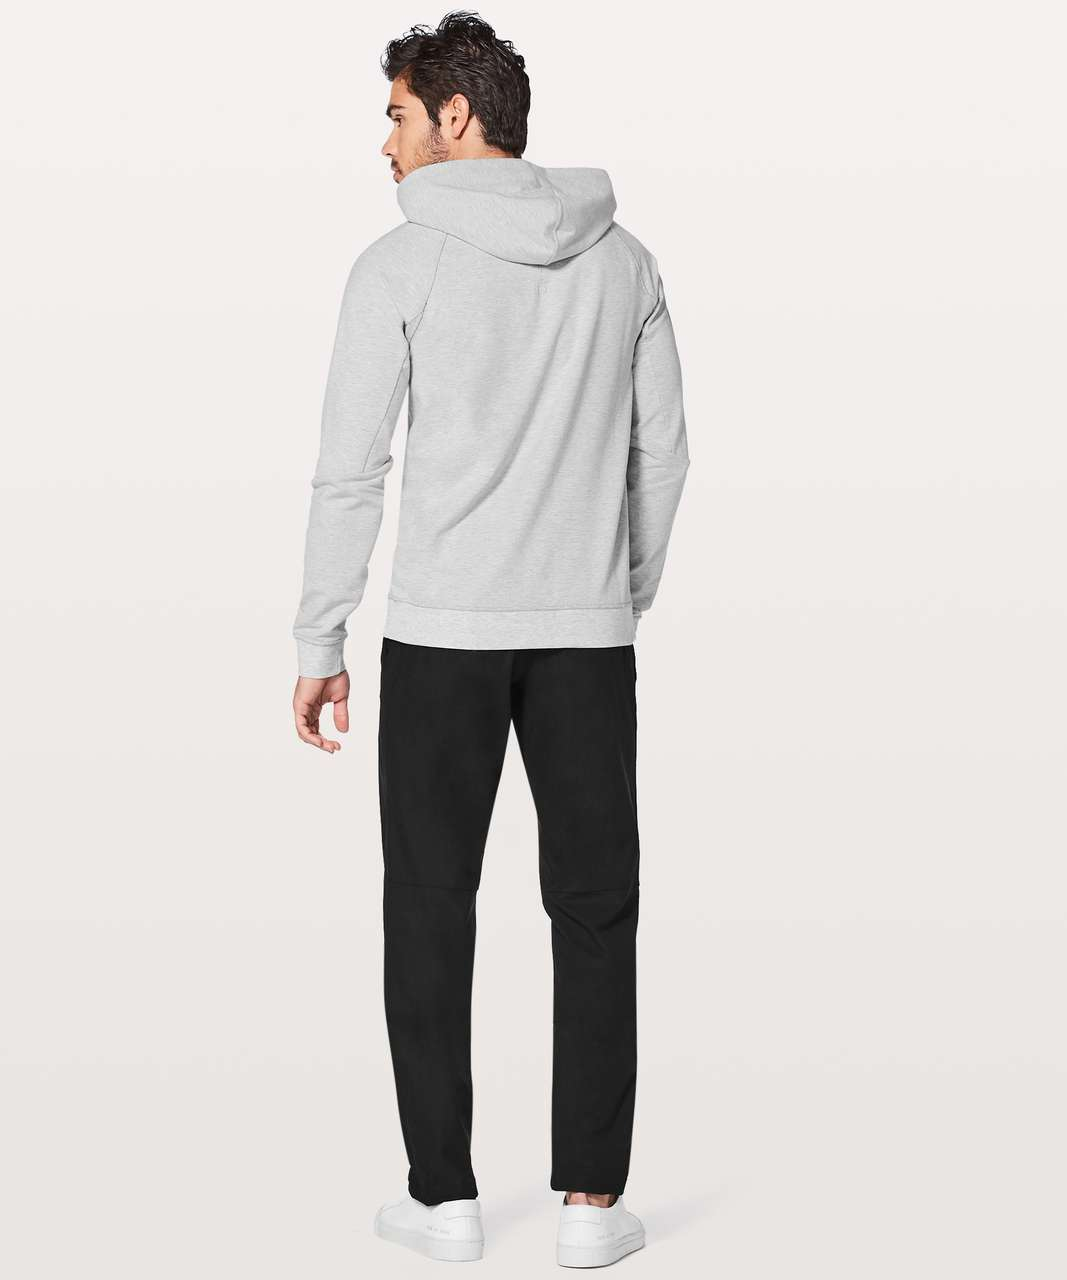 Lululemon City Sweat Pullover Hoodie - Heathered Ultra Light Grey